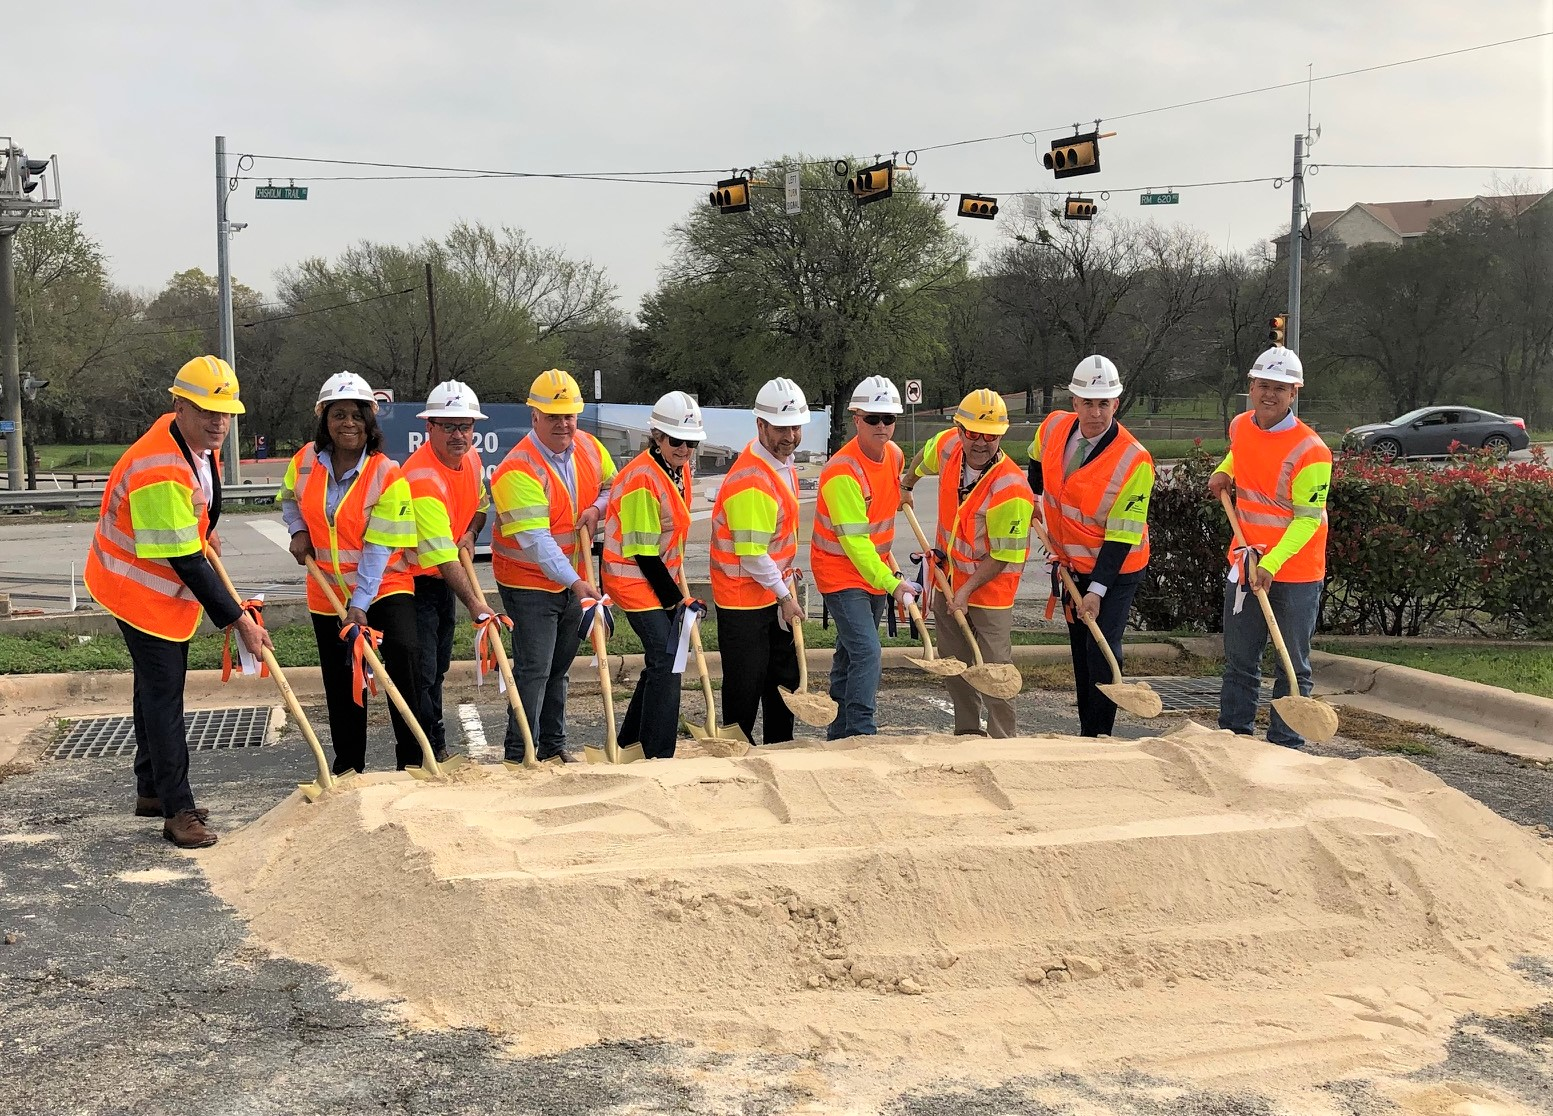 TxDOT officials join Williamson County Commissioner Terry Cook, Round Rock Mayor Craig Morgan, August Alvarado with Congressman John Carter's office and others to turn dirt for the new RM 620 Roundabout project.